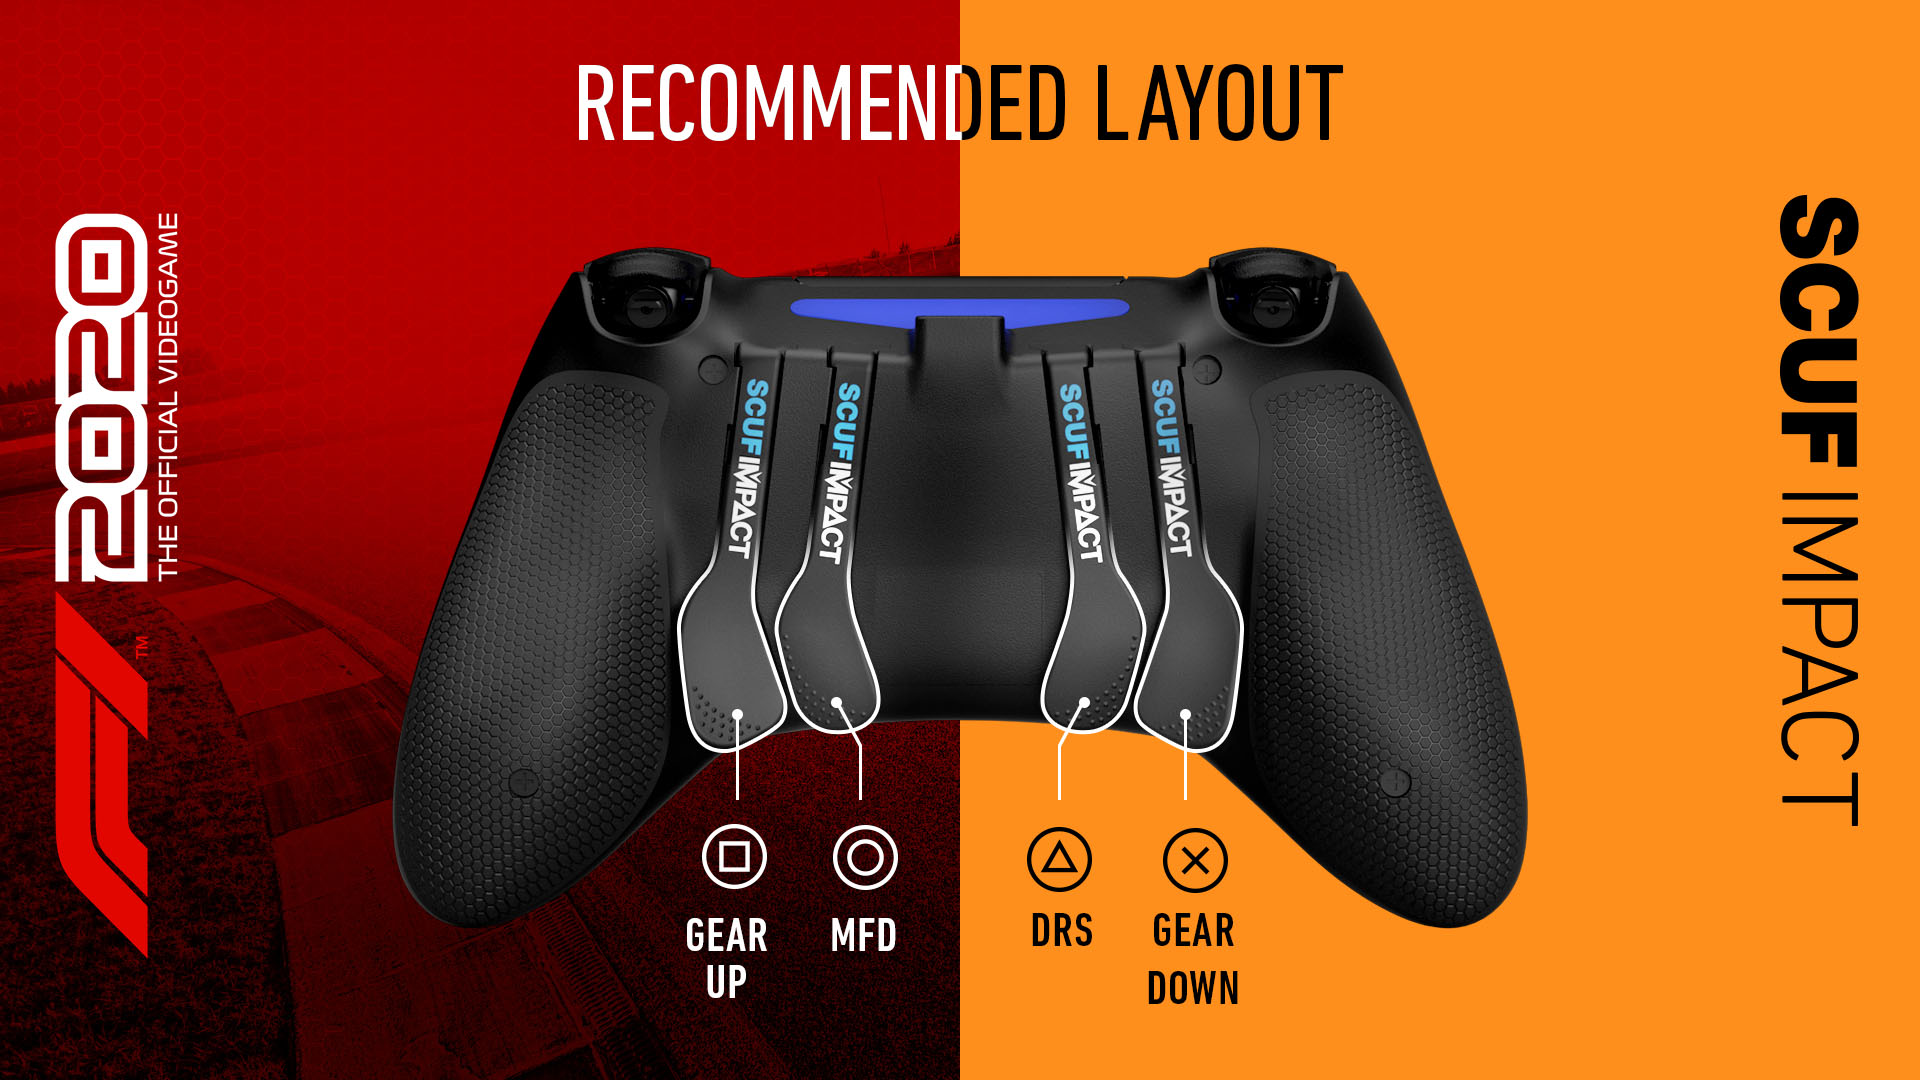 SCUF IMPACT F1 2020 PS4 Controller Setup